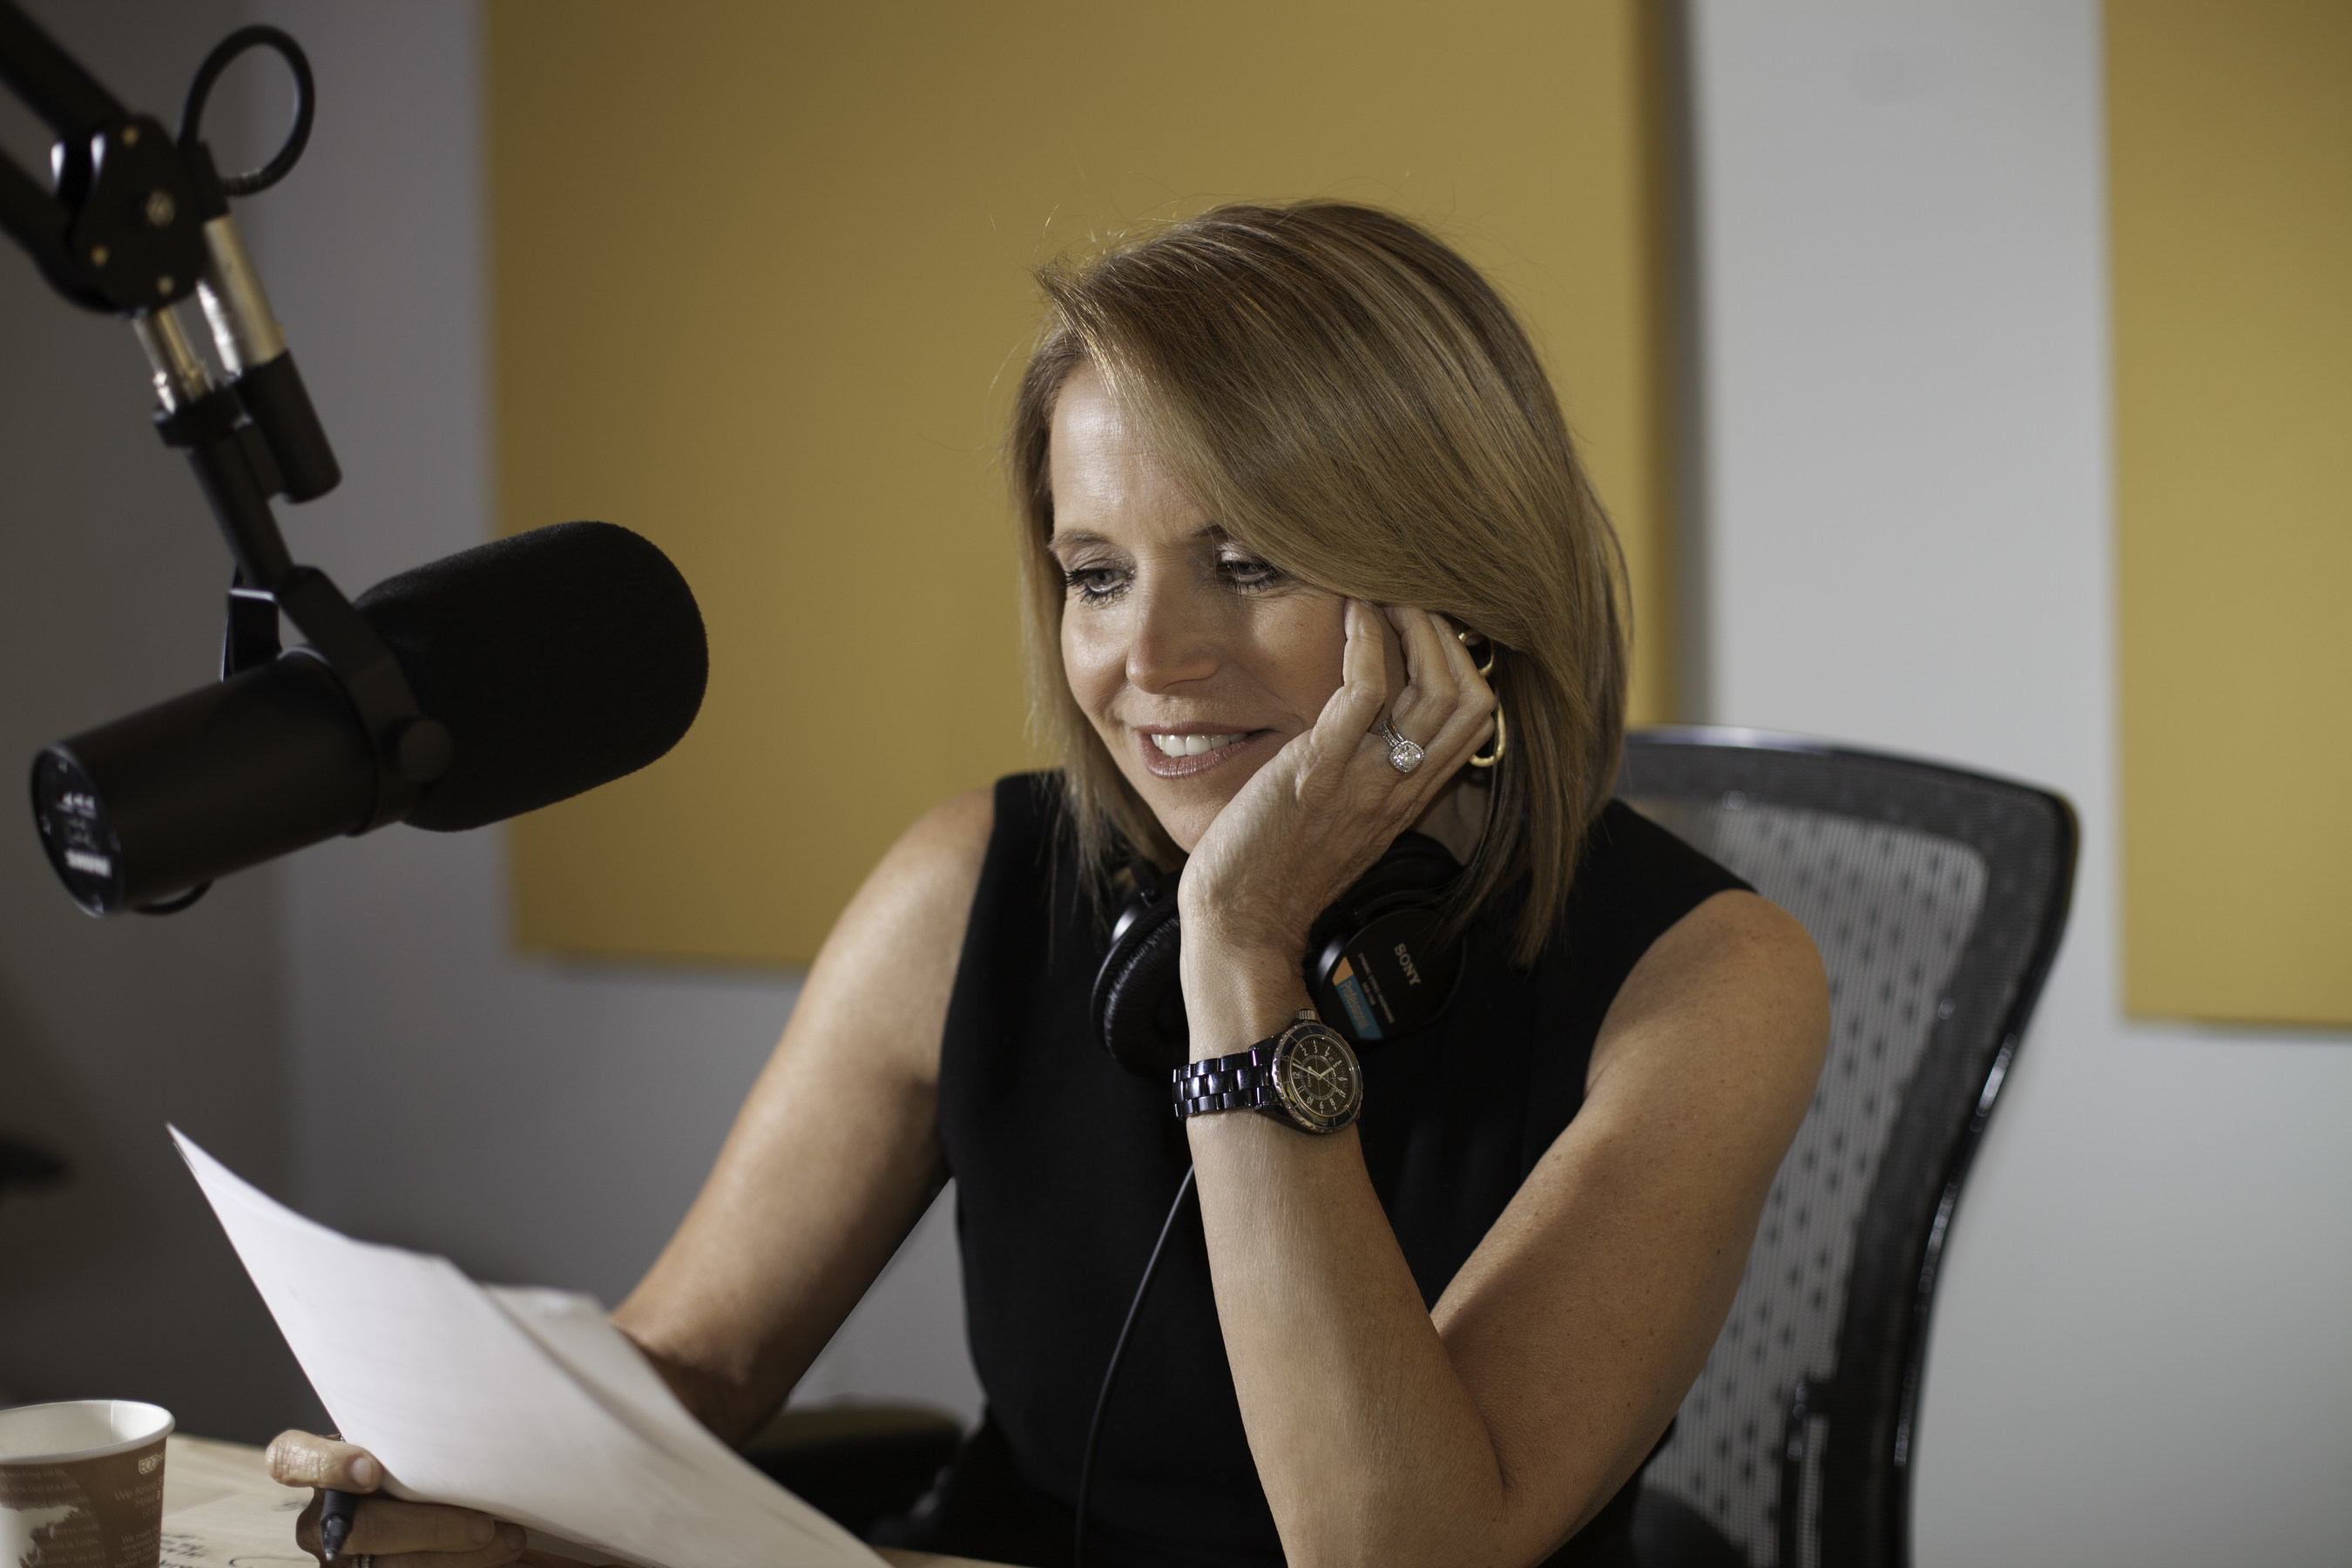 """Award-winning journalist and TV personality Katie Couric has launched her first podcast, """"Katie Couric,"""" on the Earwolf network."""